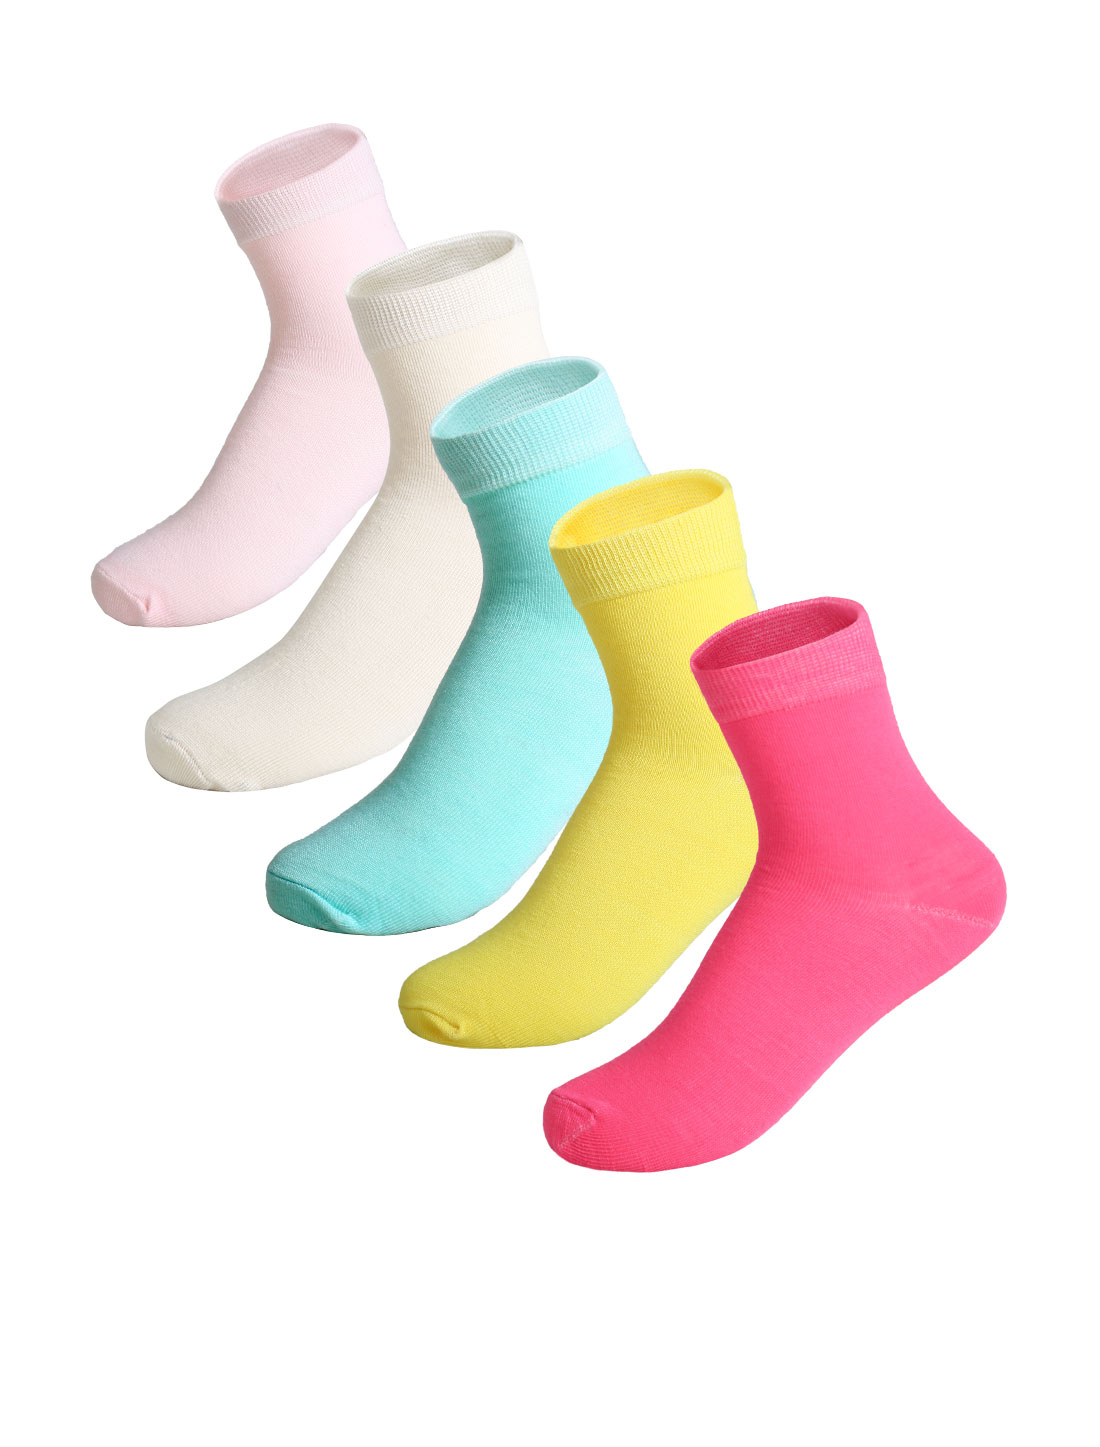 Women 5 pair Ankle Length Elastic Cuff Socks Assorted 9-11